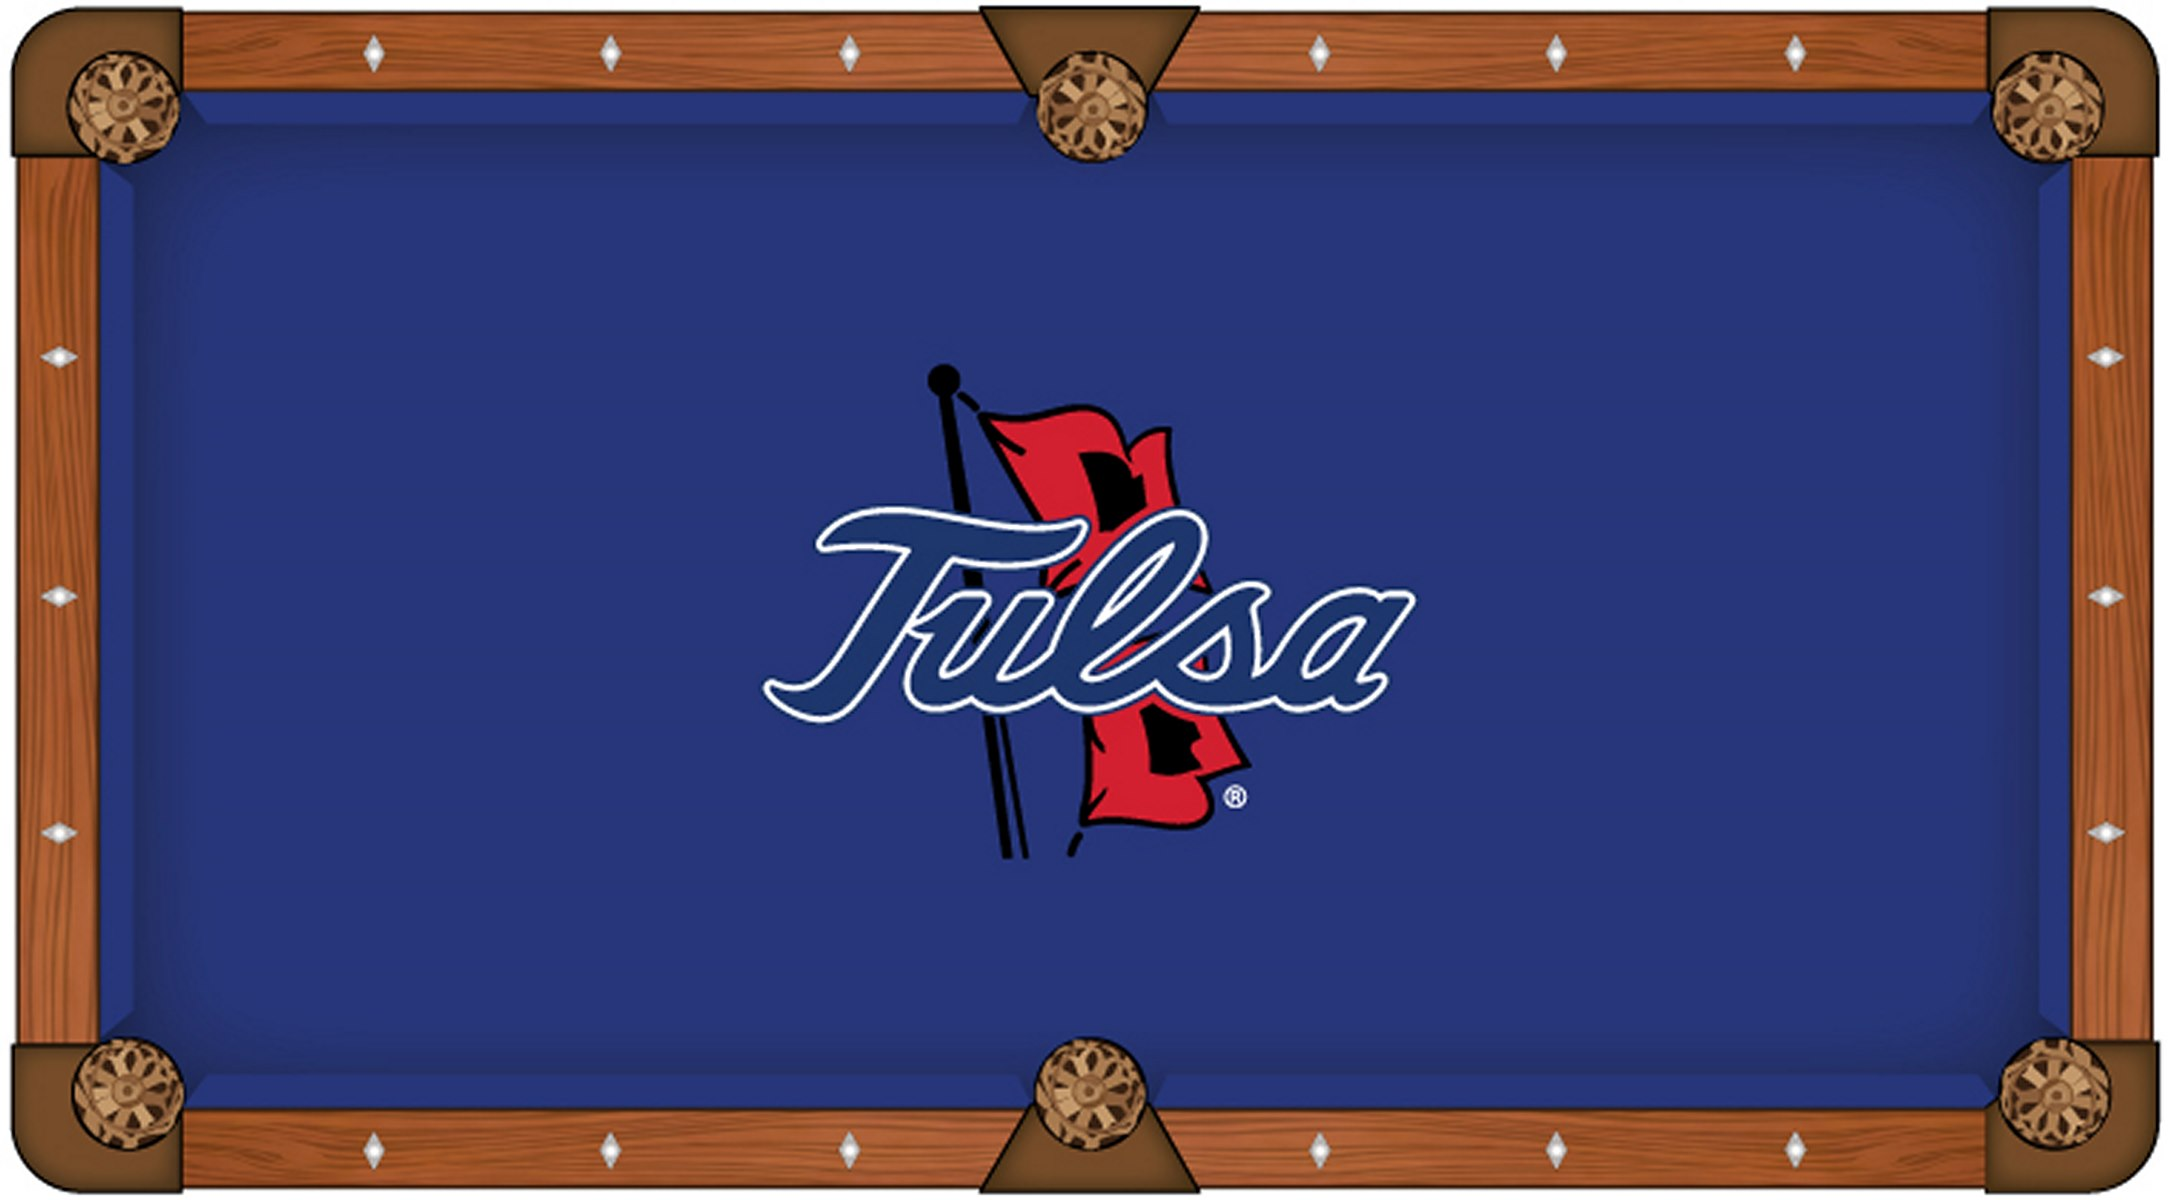 8 39 Tulsa Pool Table Cloth Zerbee